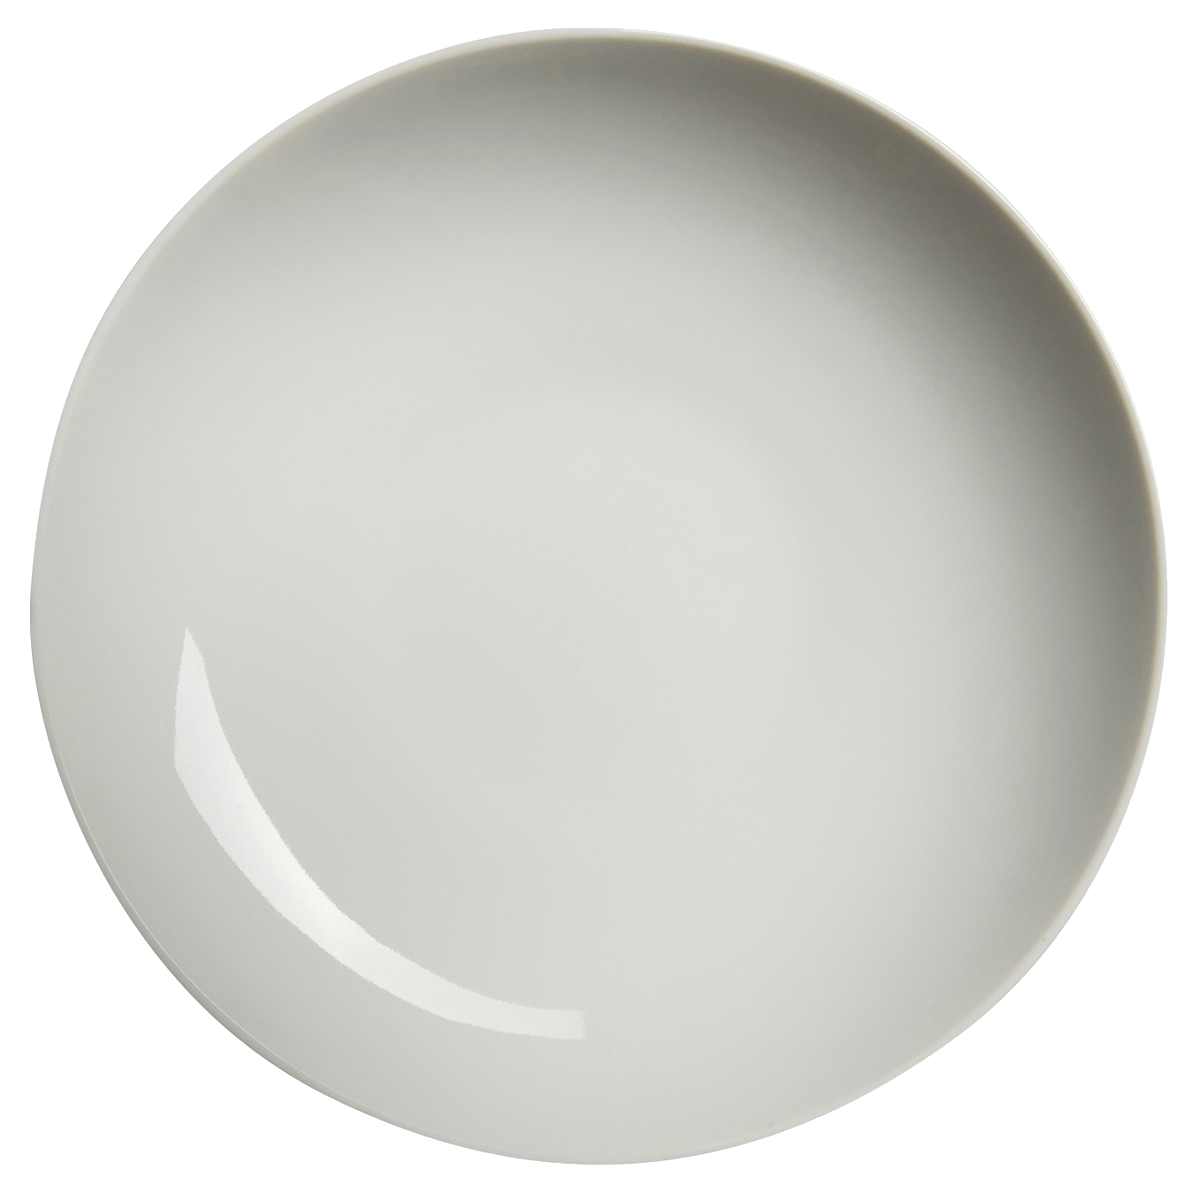 Circle transparent png. Empty plate stickpng download